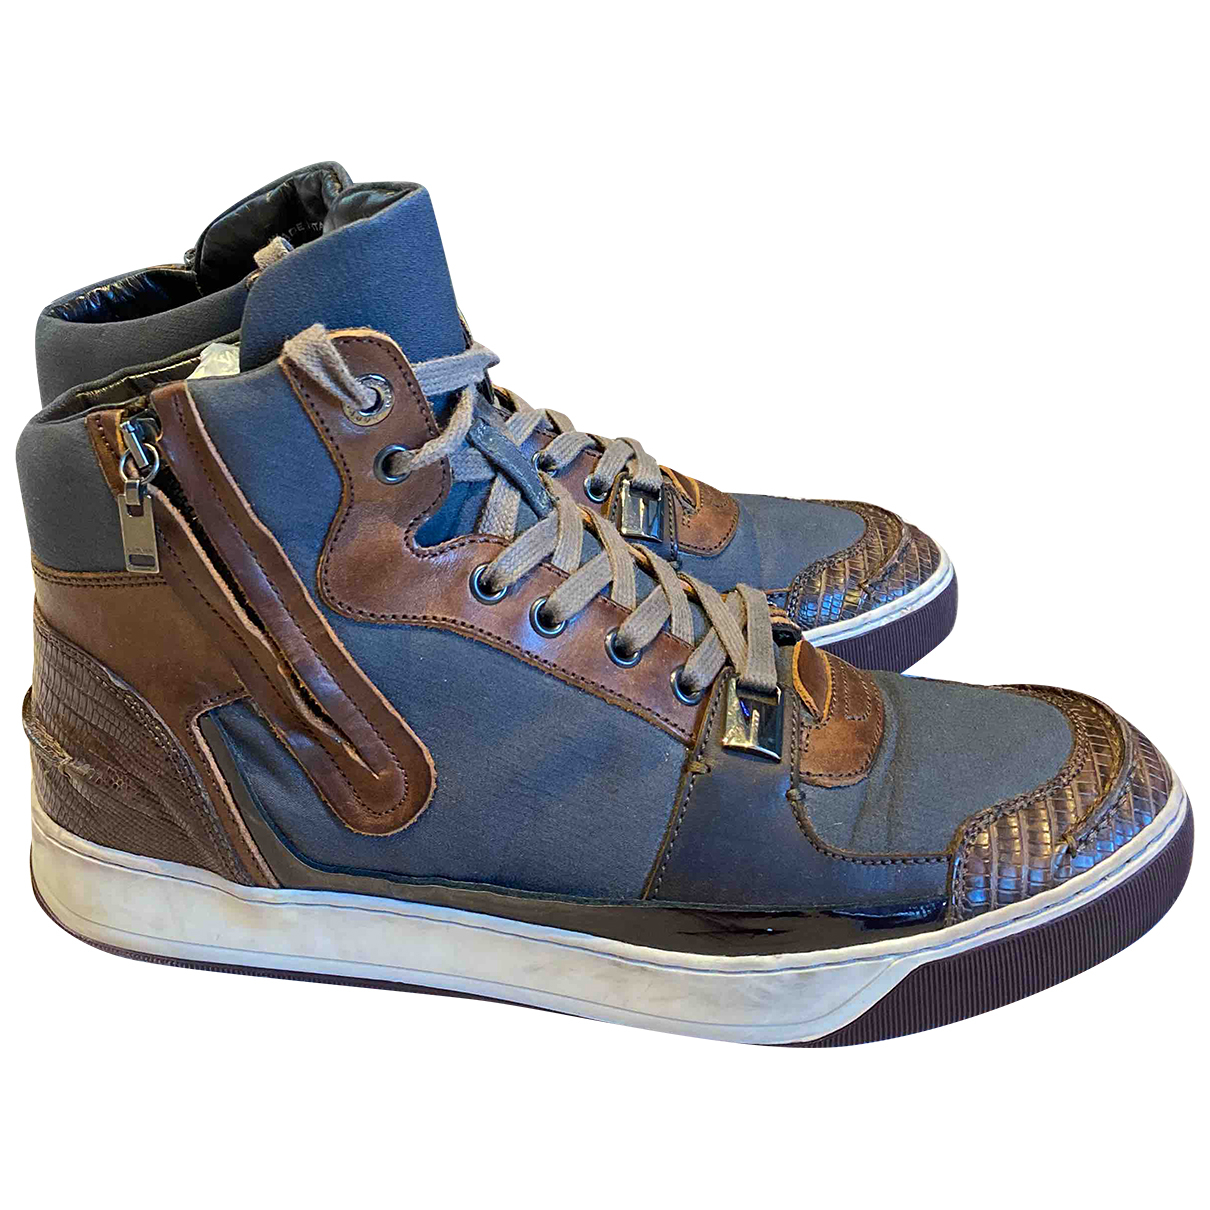 Lanvin N Brown Cloth Trainers for Men 8 UK